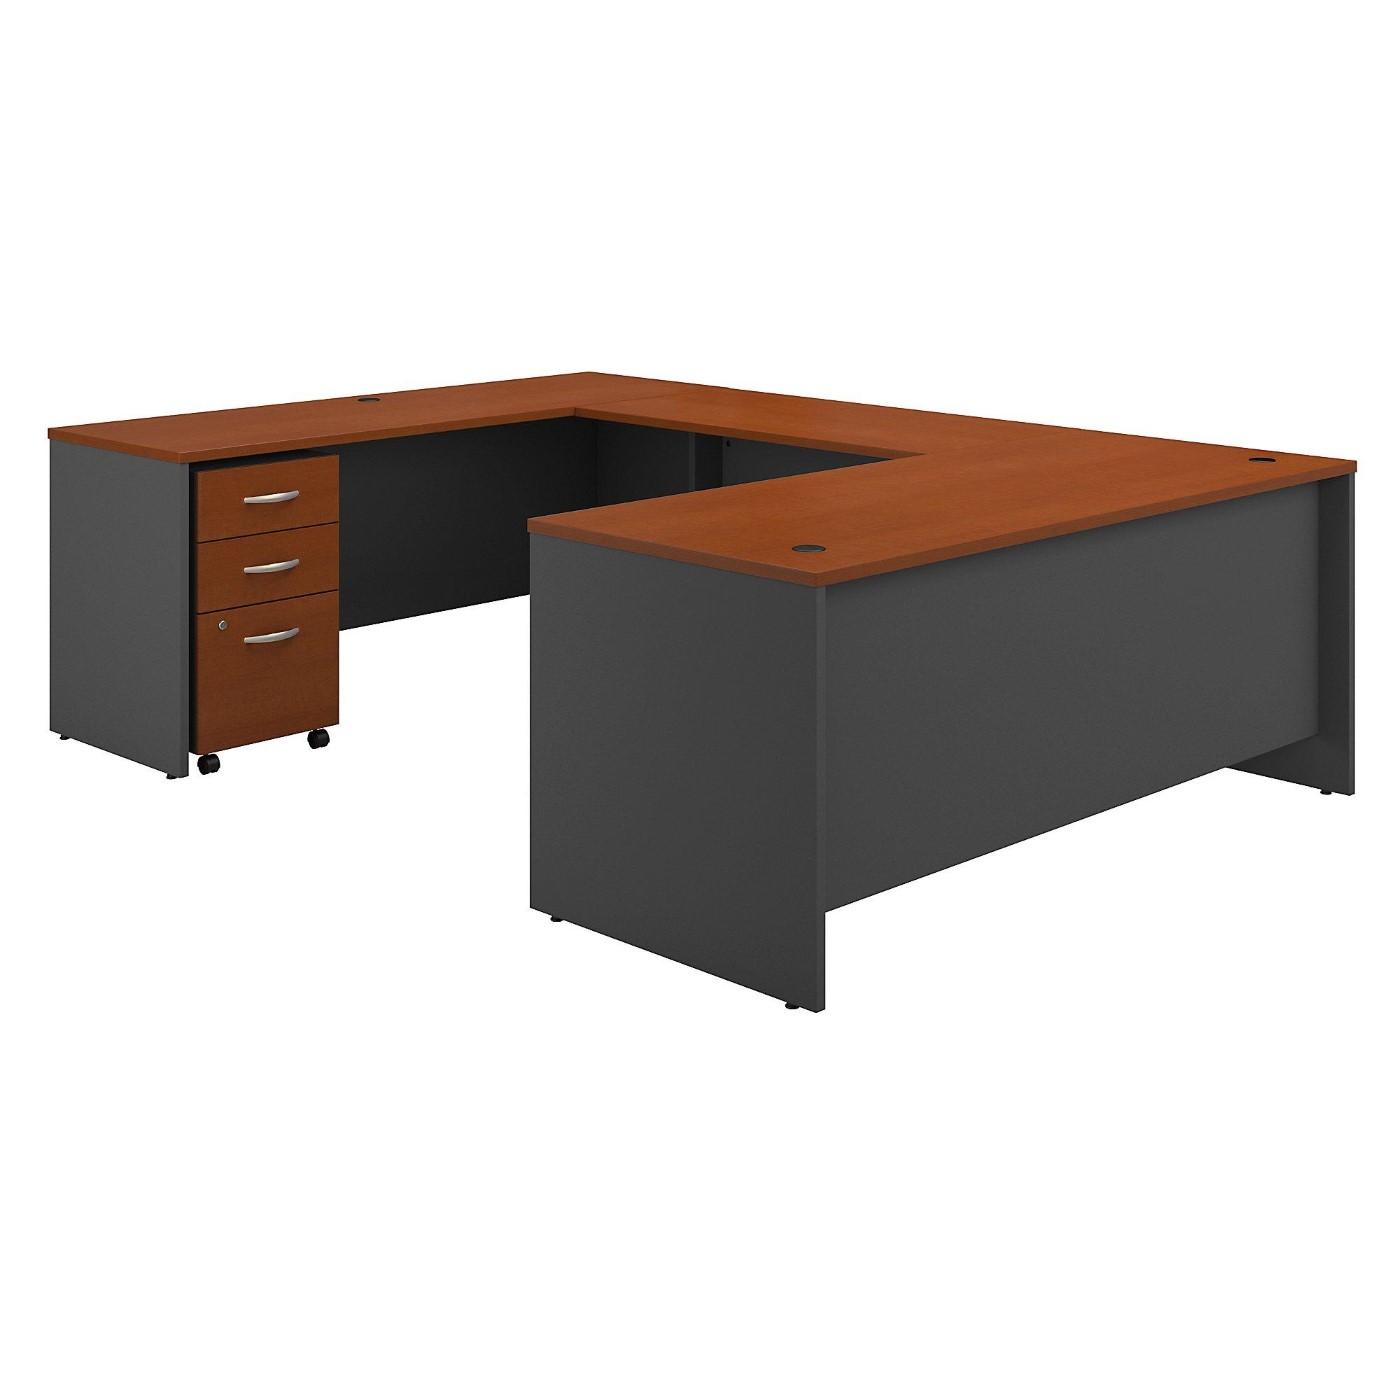 BUSH BUSINESS FURNITURE SERIES C 72W X 30D U SHAPED DESK WITH MOBILE FILE CABINET. FREE SHIPPING  VIDEO BELOW.